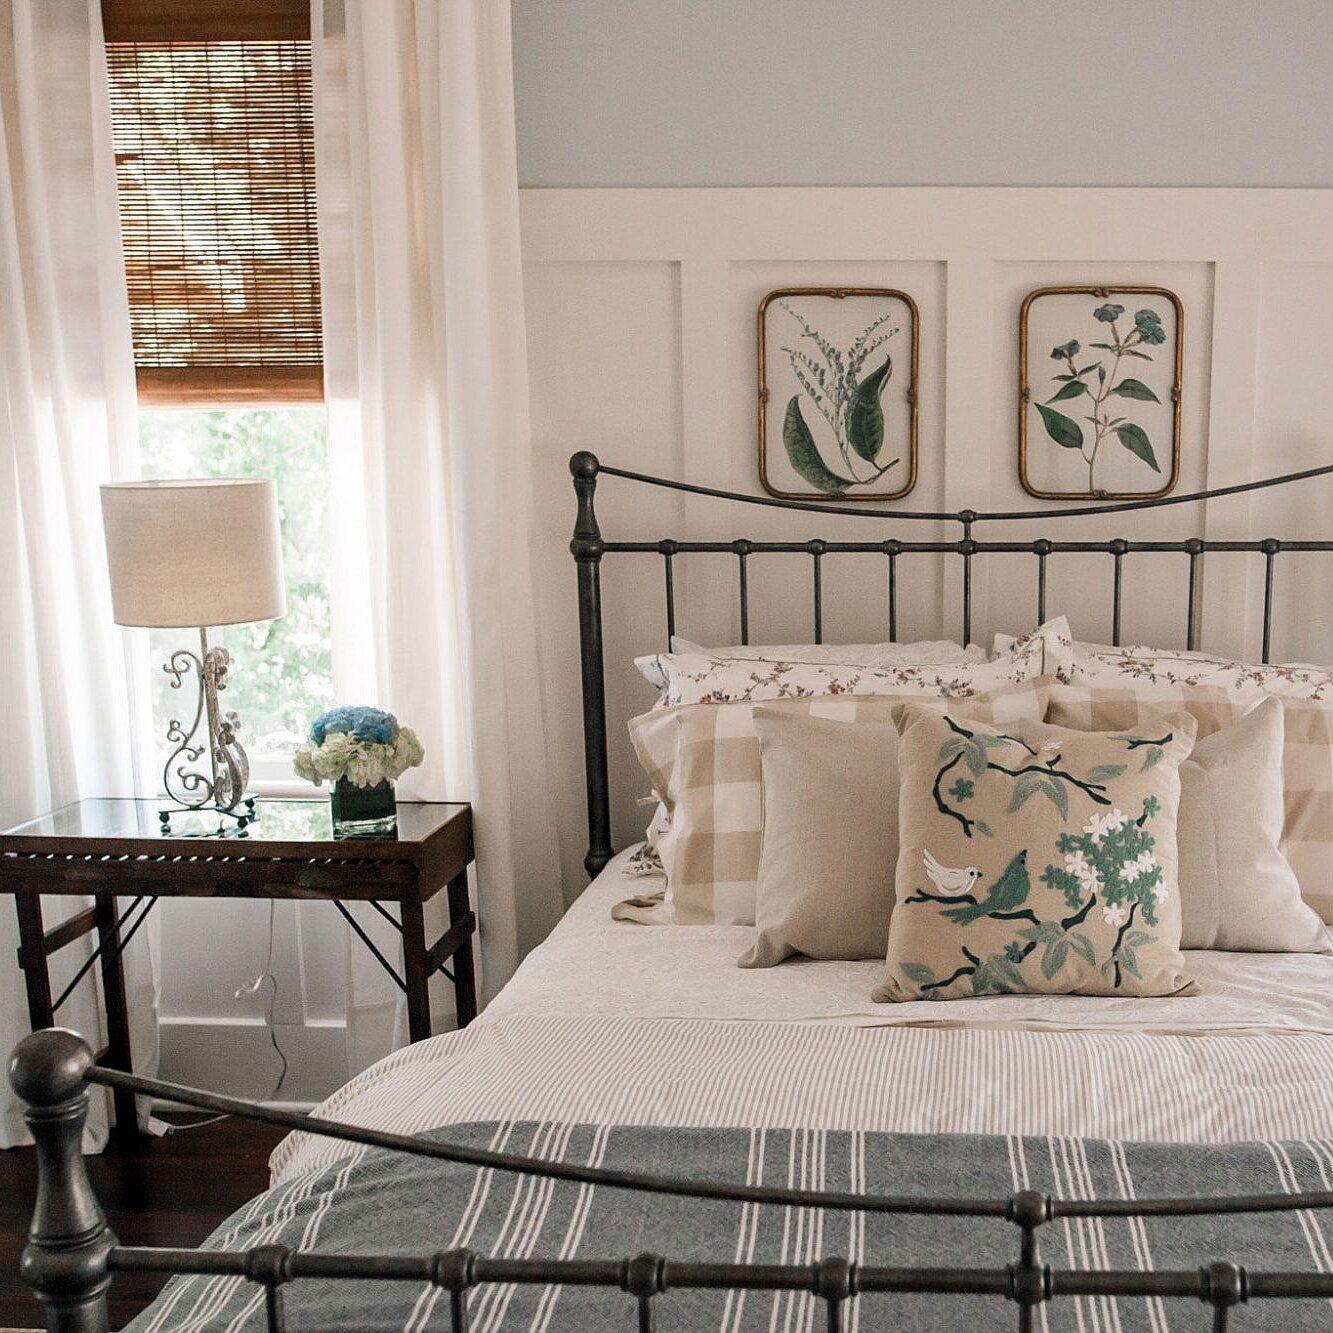 6 Decorating Ideas From ' Home Town' That You Can Steal For